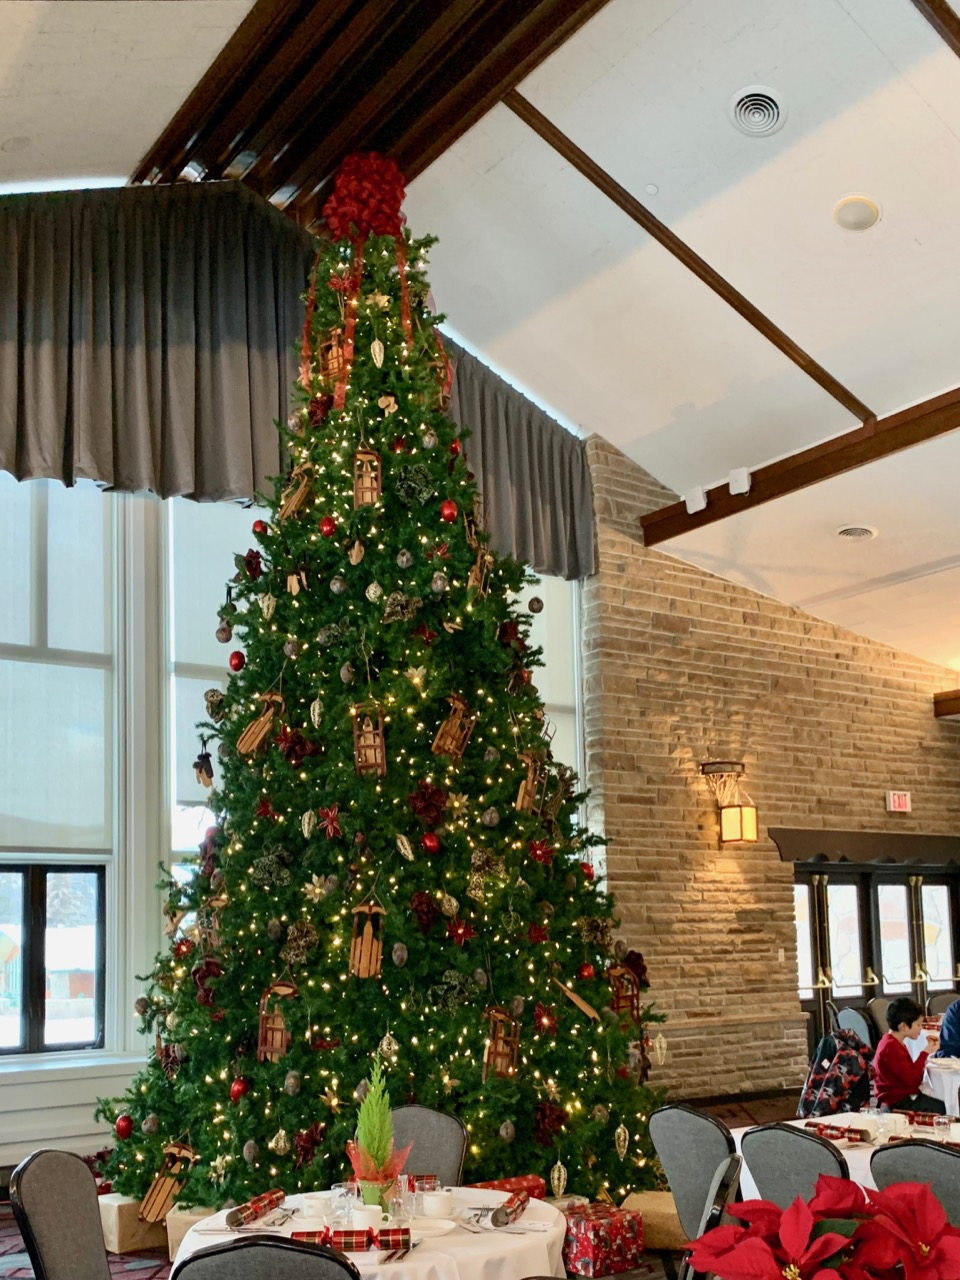 A giant Christmas tree that reached all the way to the ceiling in the Beauvert Room at the Jasper Park Lodge! Photos by: Lighter Side Interiors